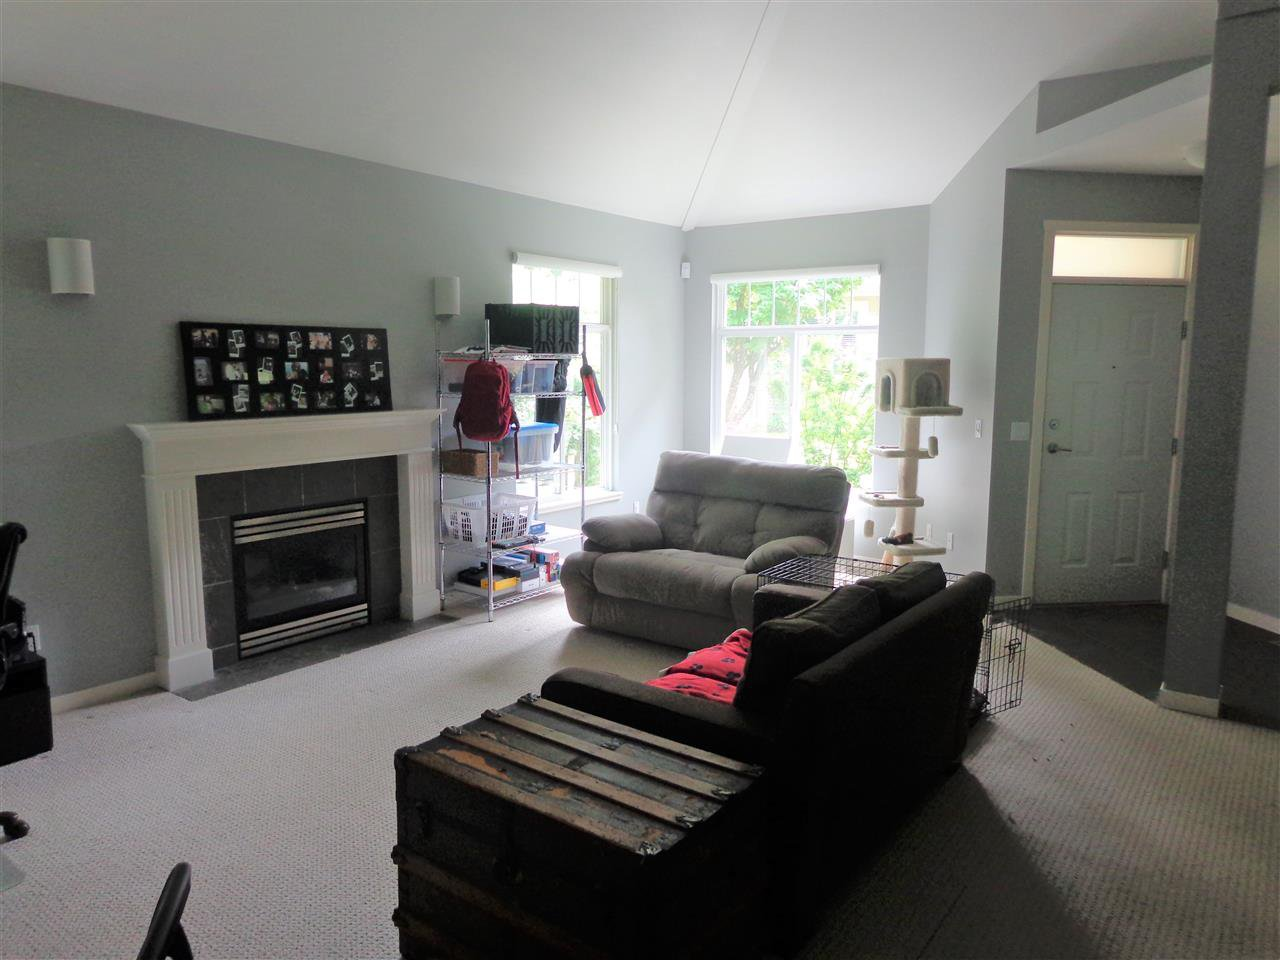 """Photo 5: Photos: 10 8588 168A Street in Surrey: Fleetwood Tynehead Townhouse for sale in """"The Brookstone"""" : MLS®# R2384013"""